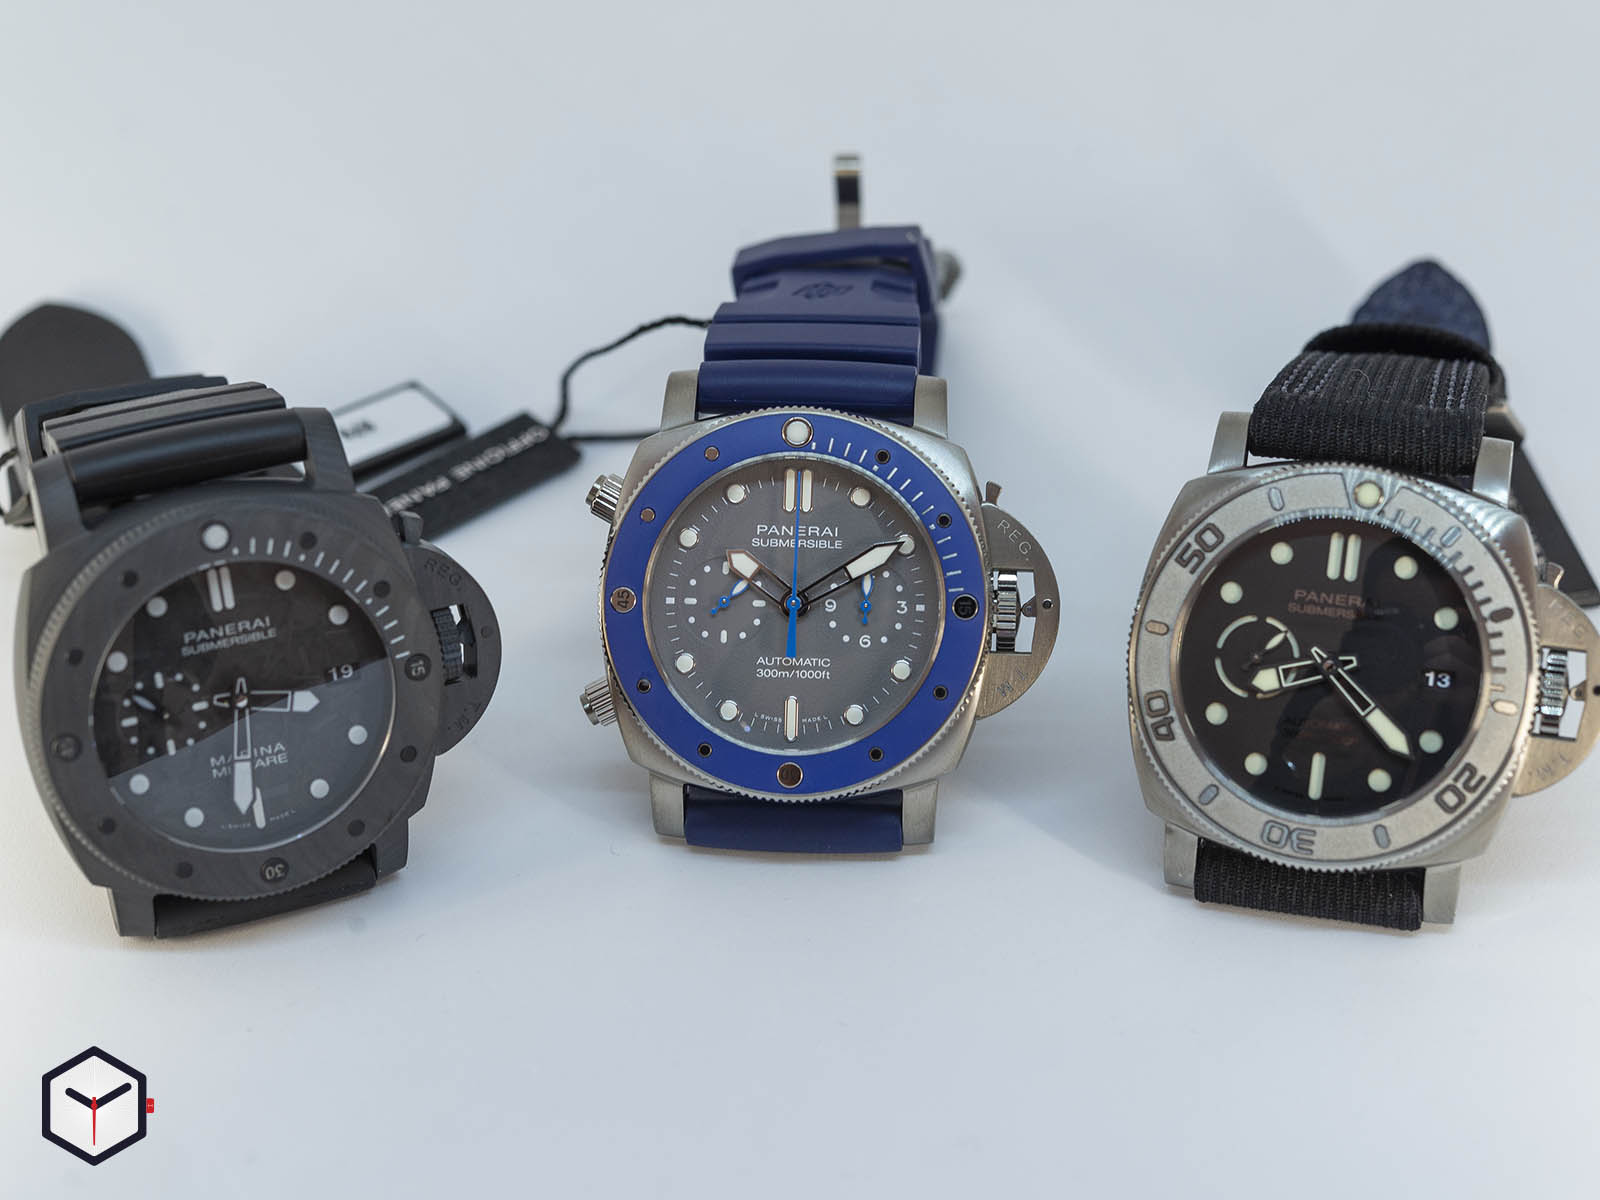 panerai-submersible-sihh-2019-2.jpg